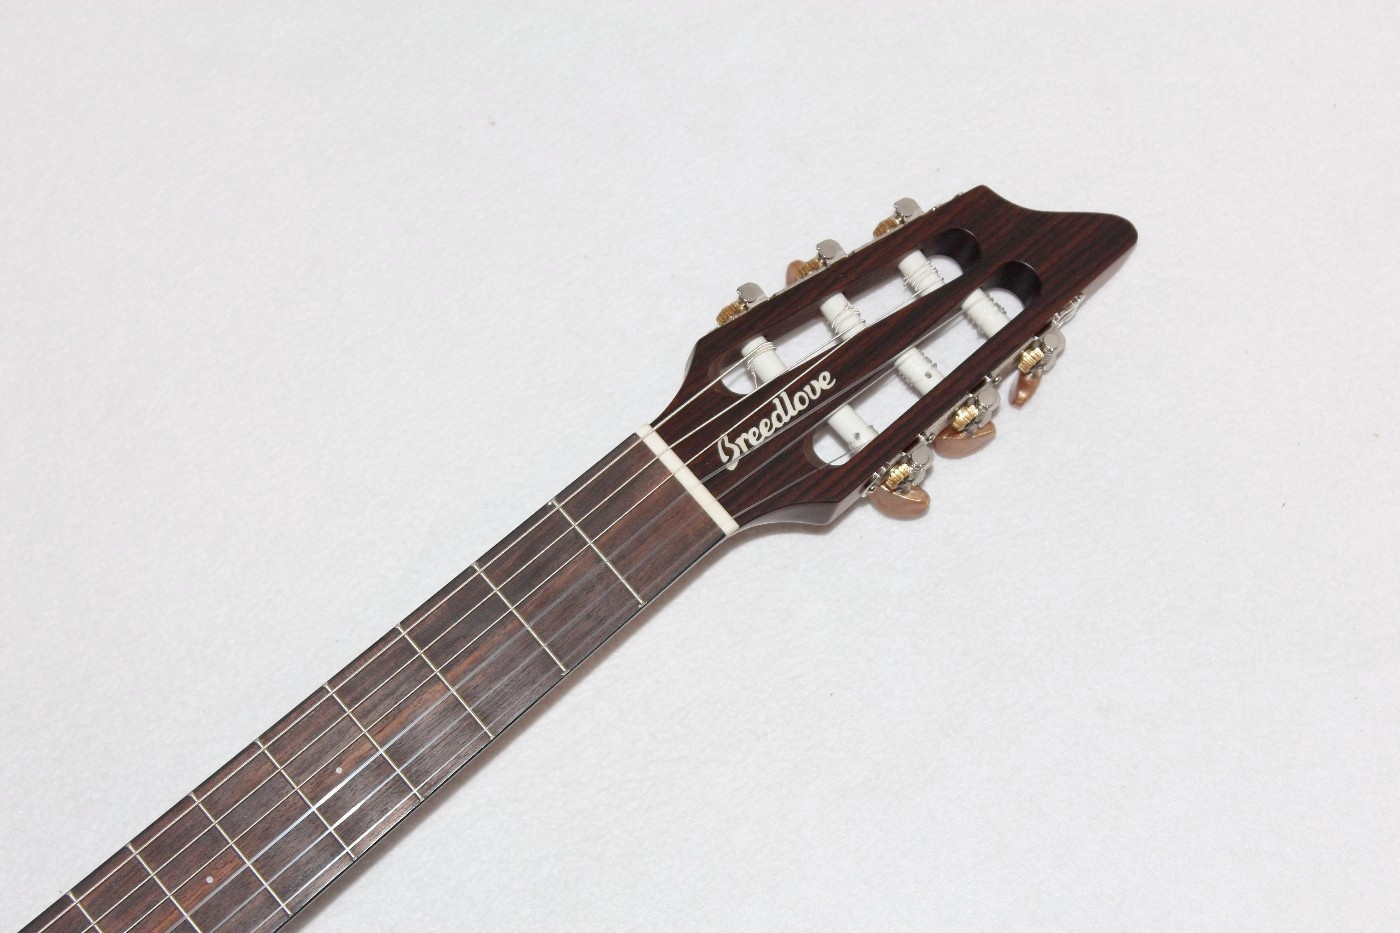 Breedlove Pursuit Nylon String Acoustic Electric Guitar Ebay